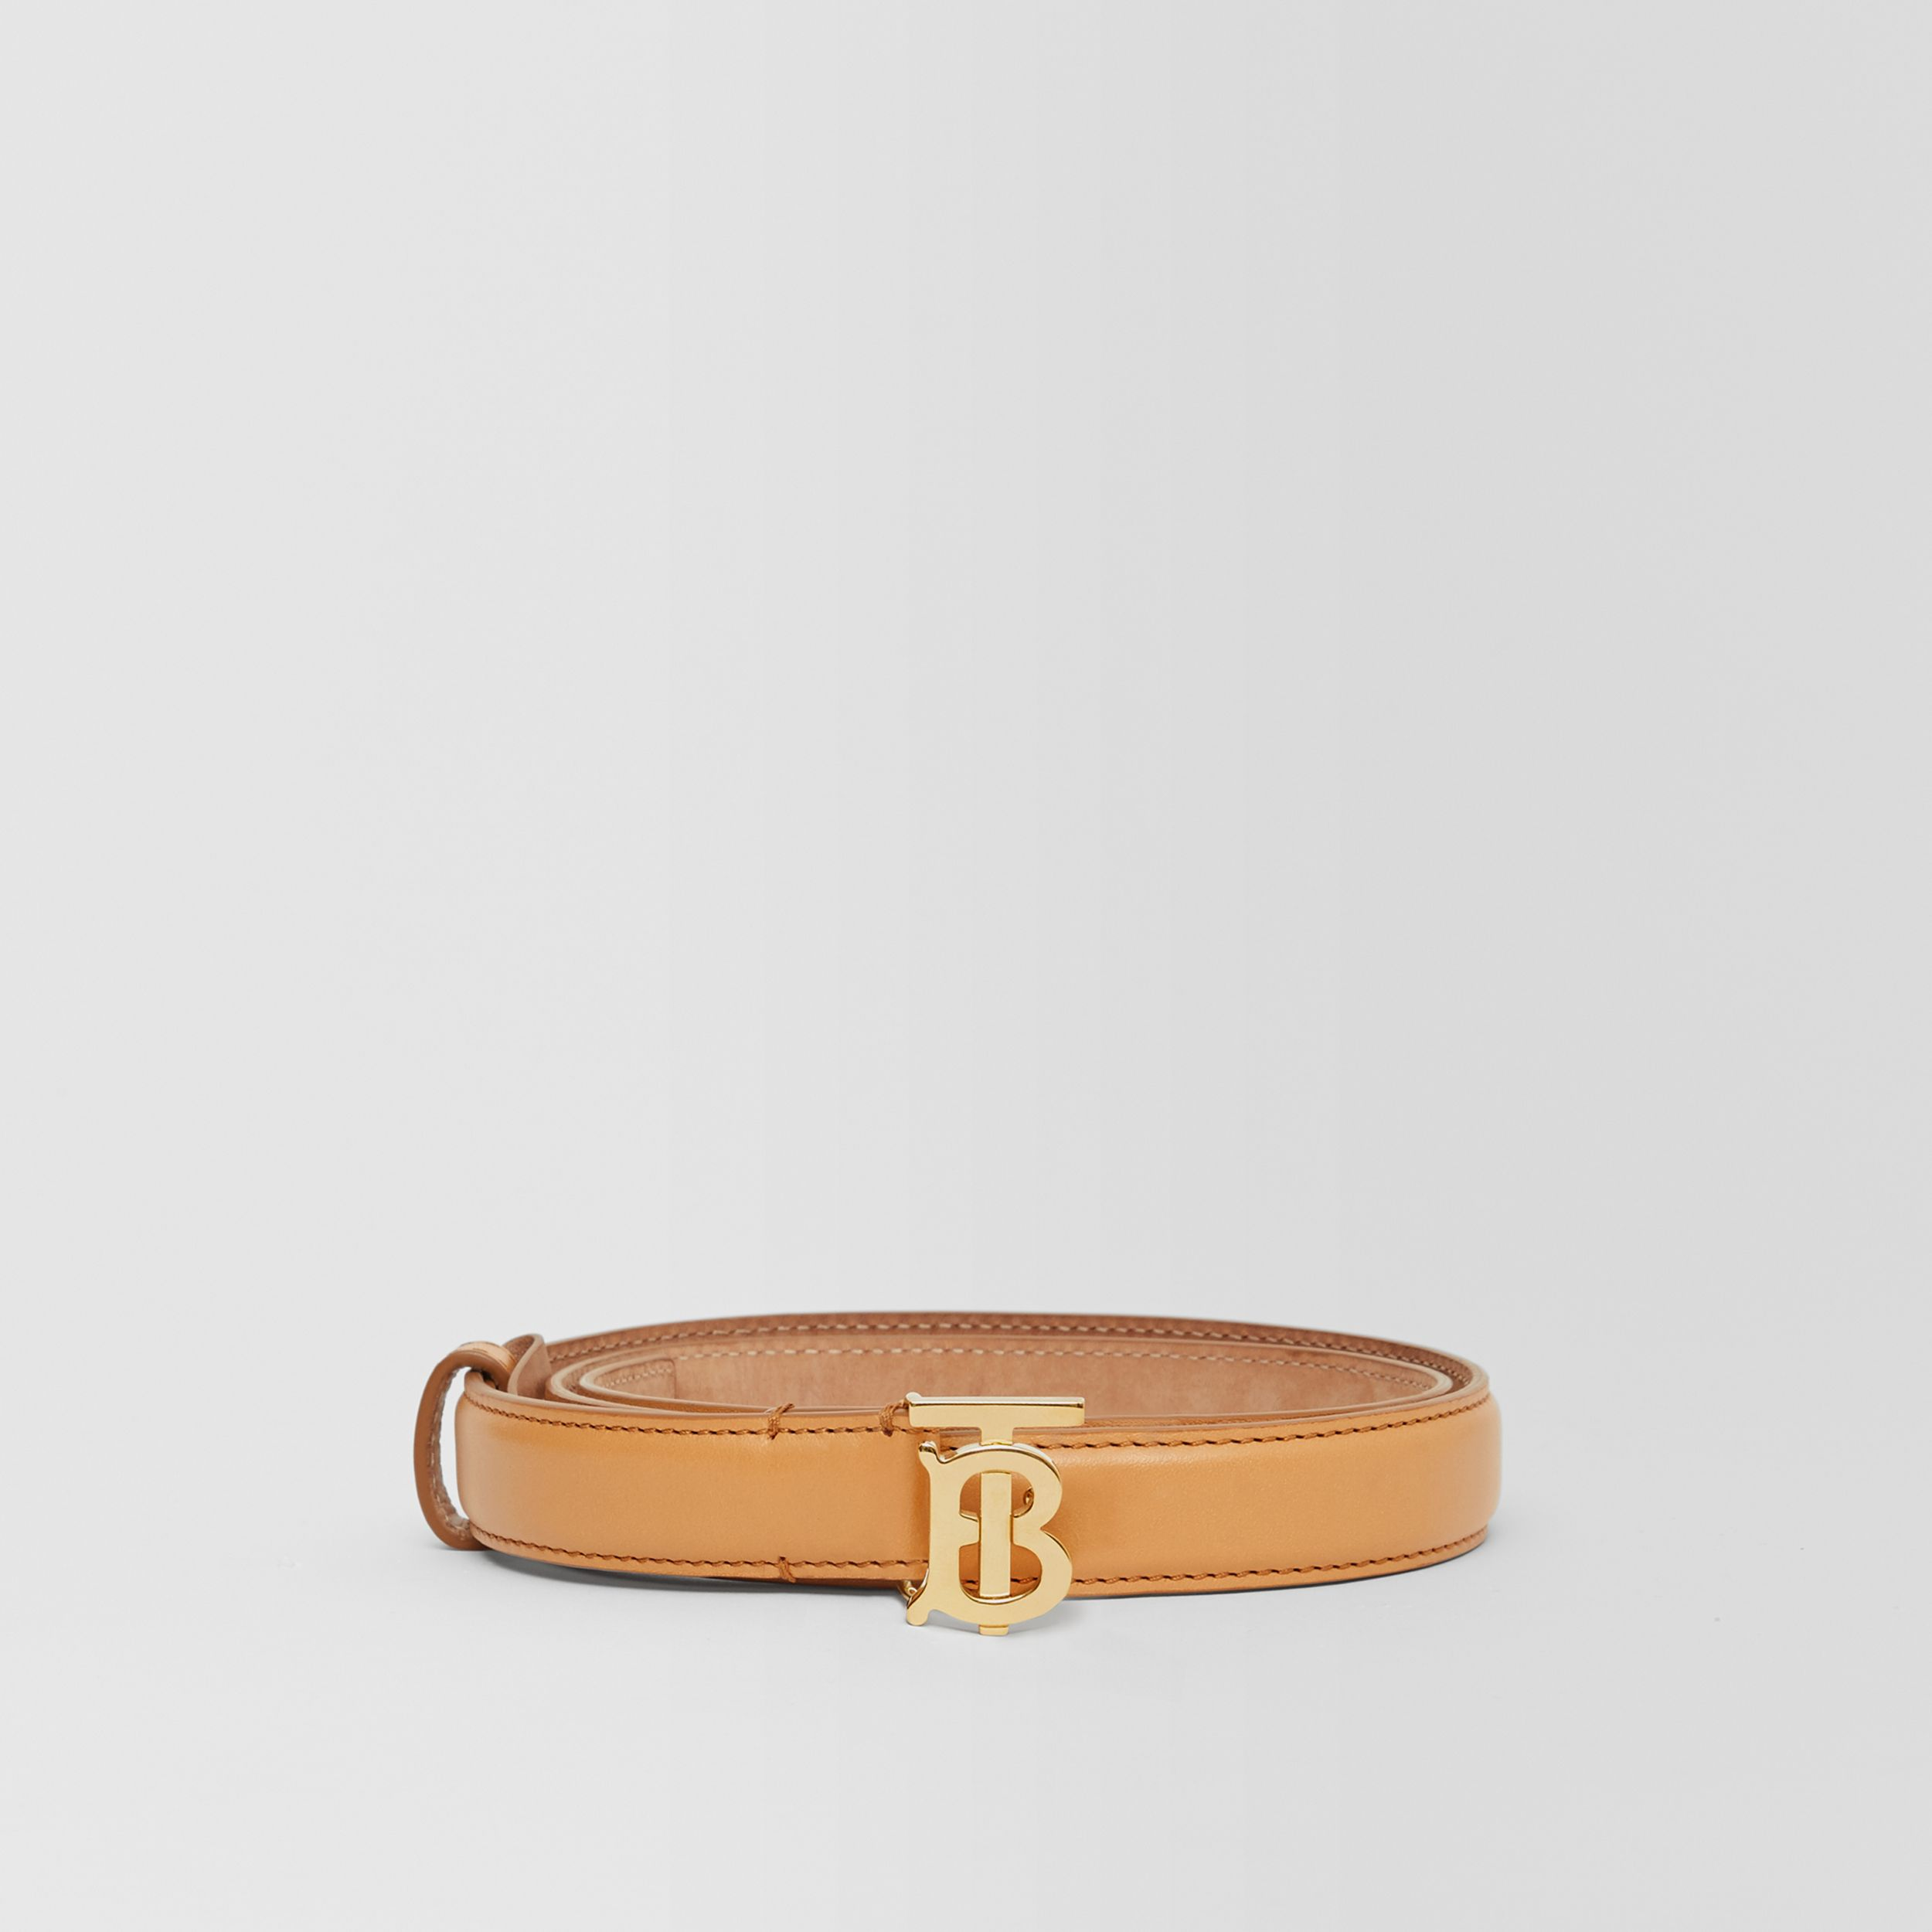 Monogram Motif Leather Belt in Warms Sand - Women | Burberry Hong Kong S.A.R. - 4